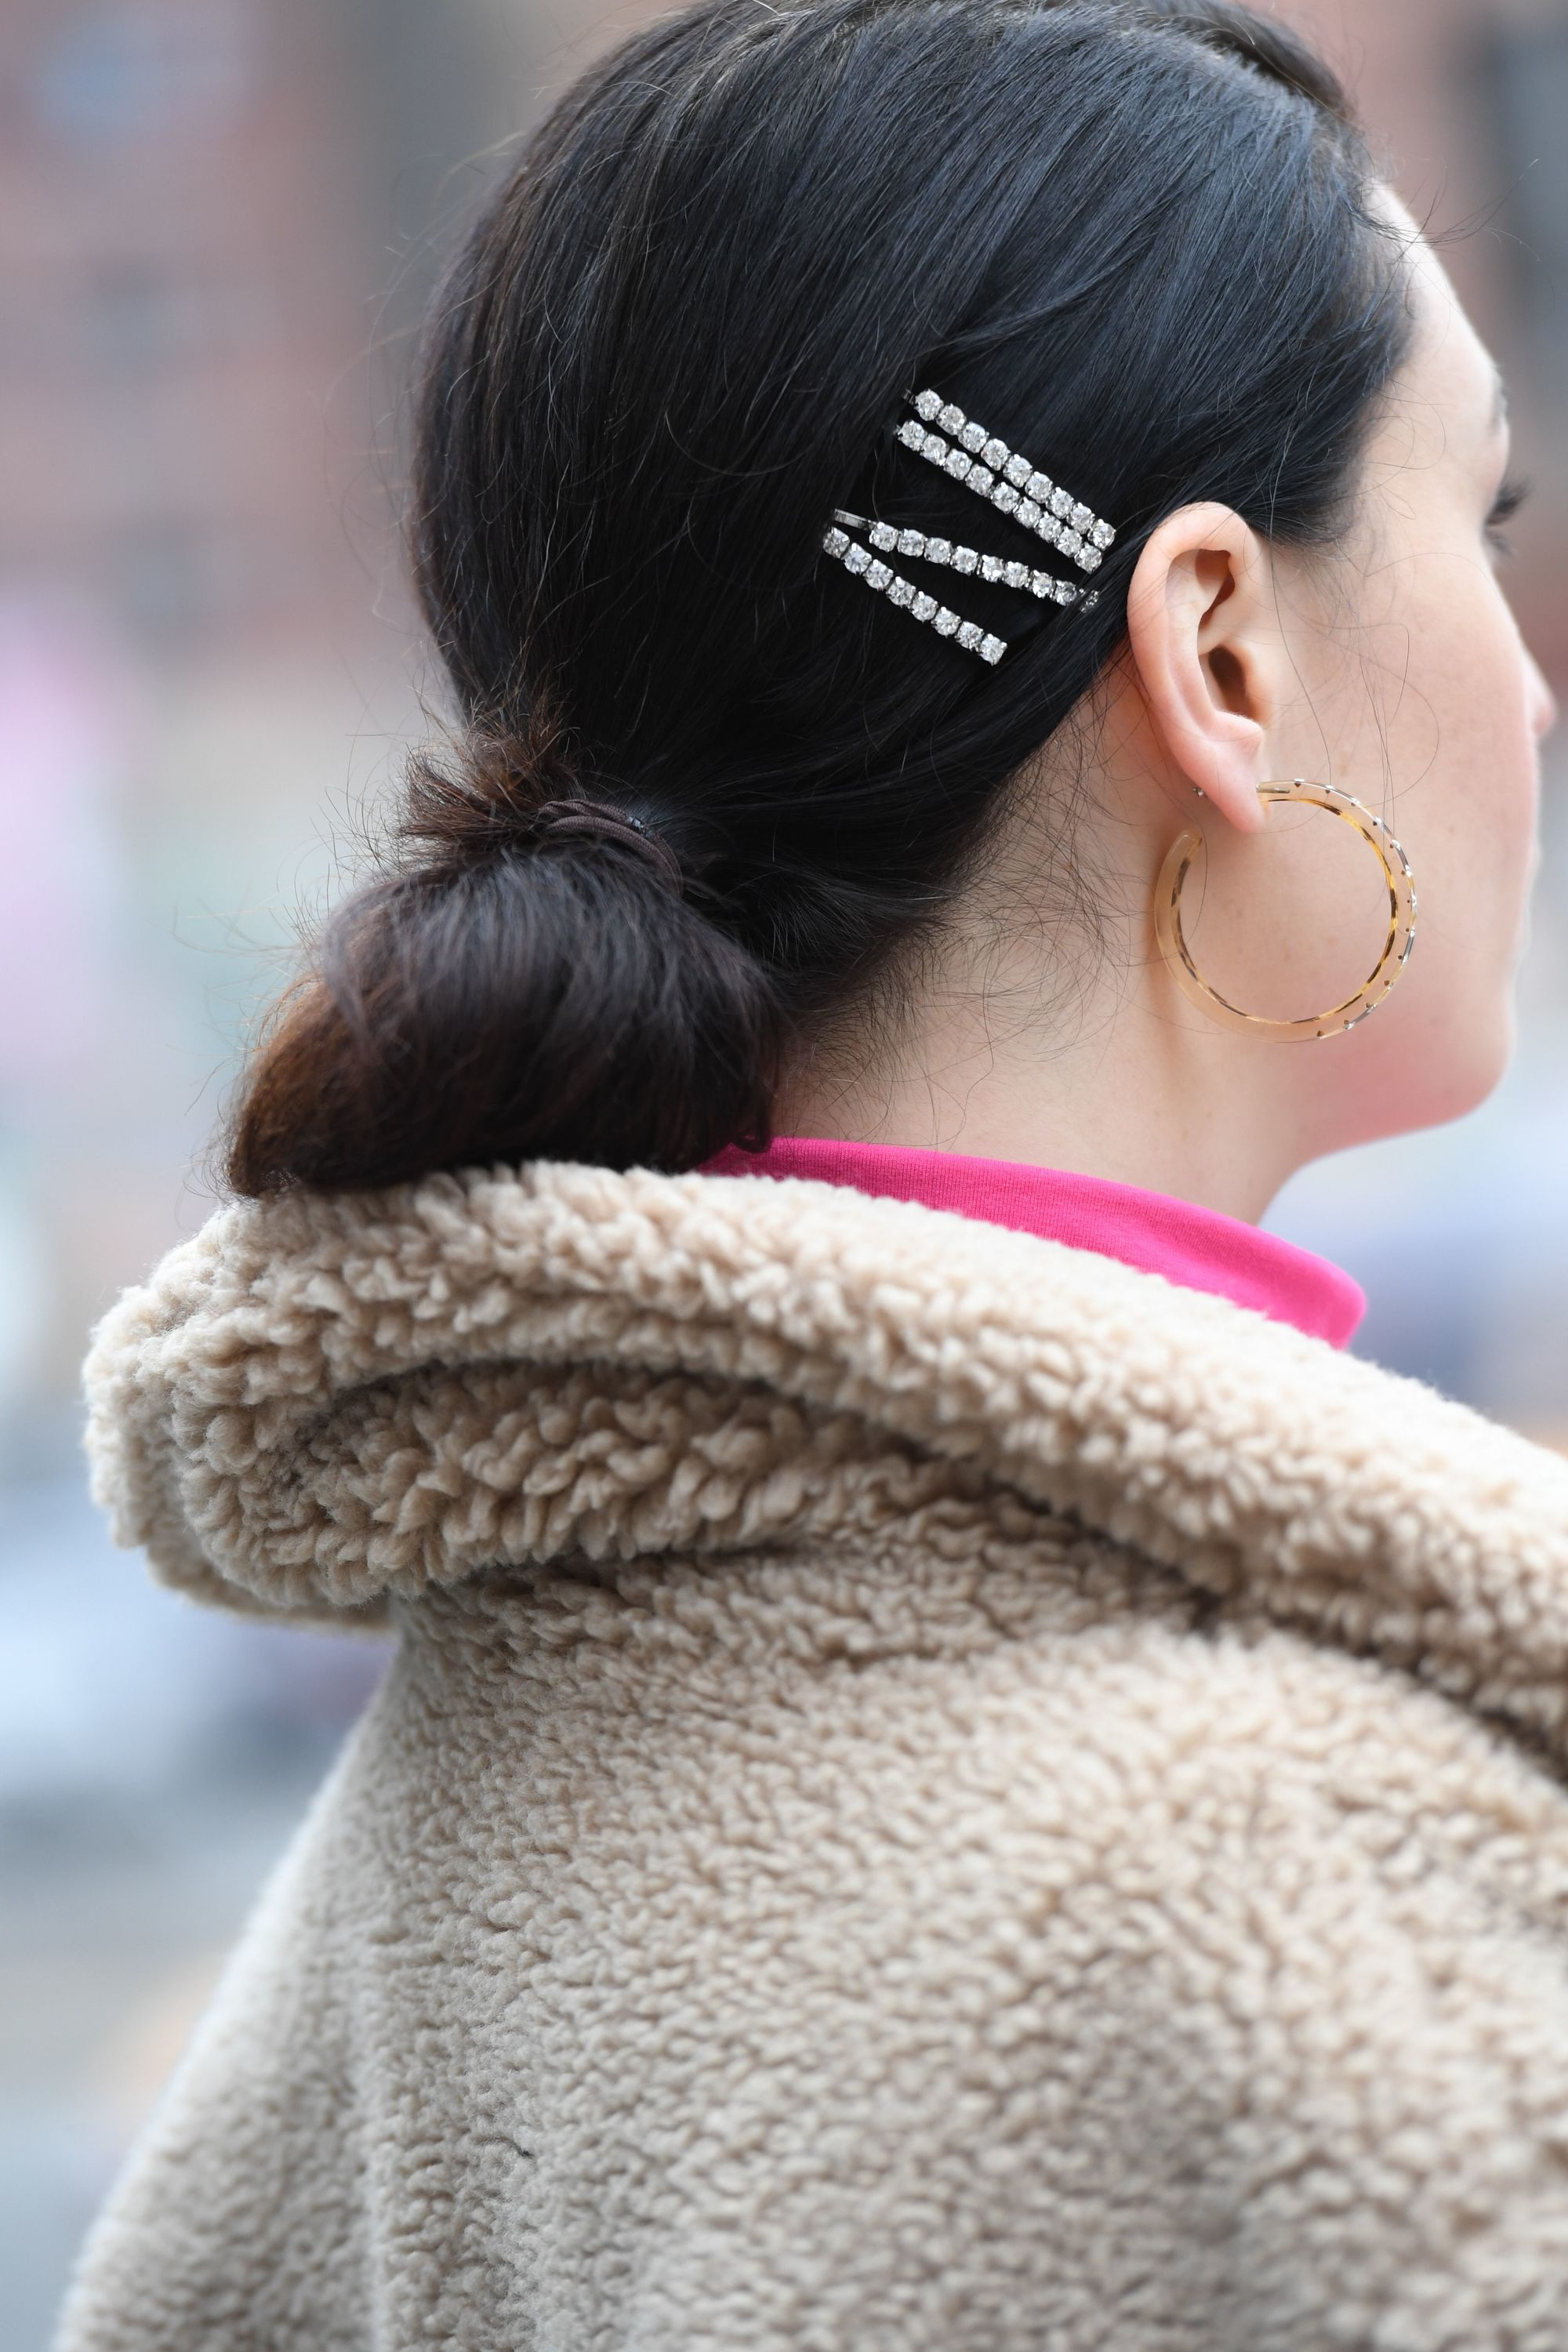 Diamante hair trend: Back side view photo of a street styler with dark hair in a low bun with four diamante encrusted hair slides